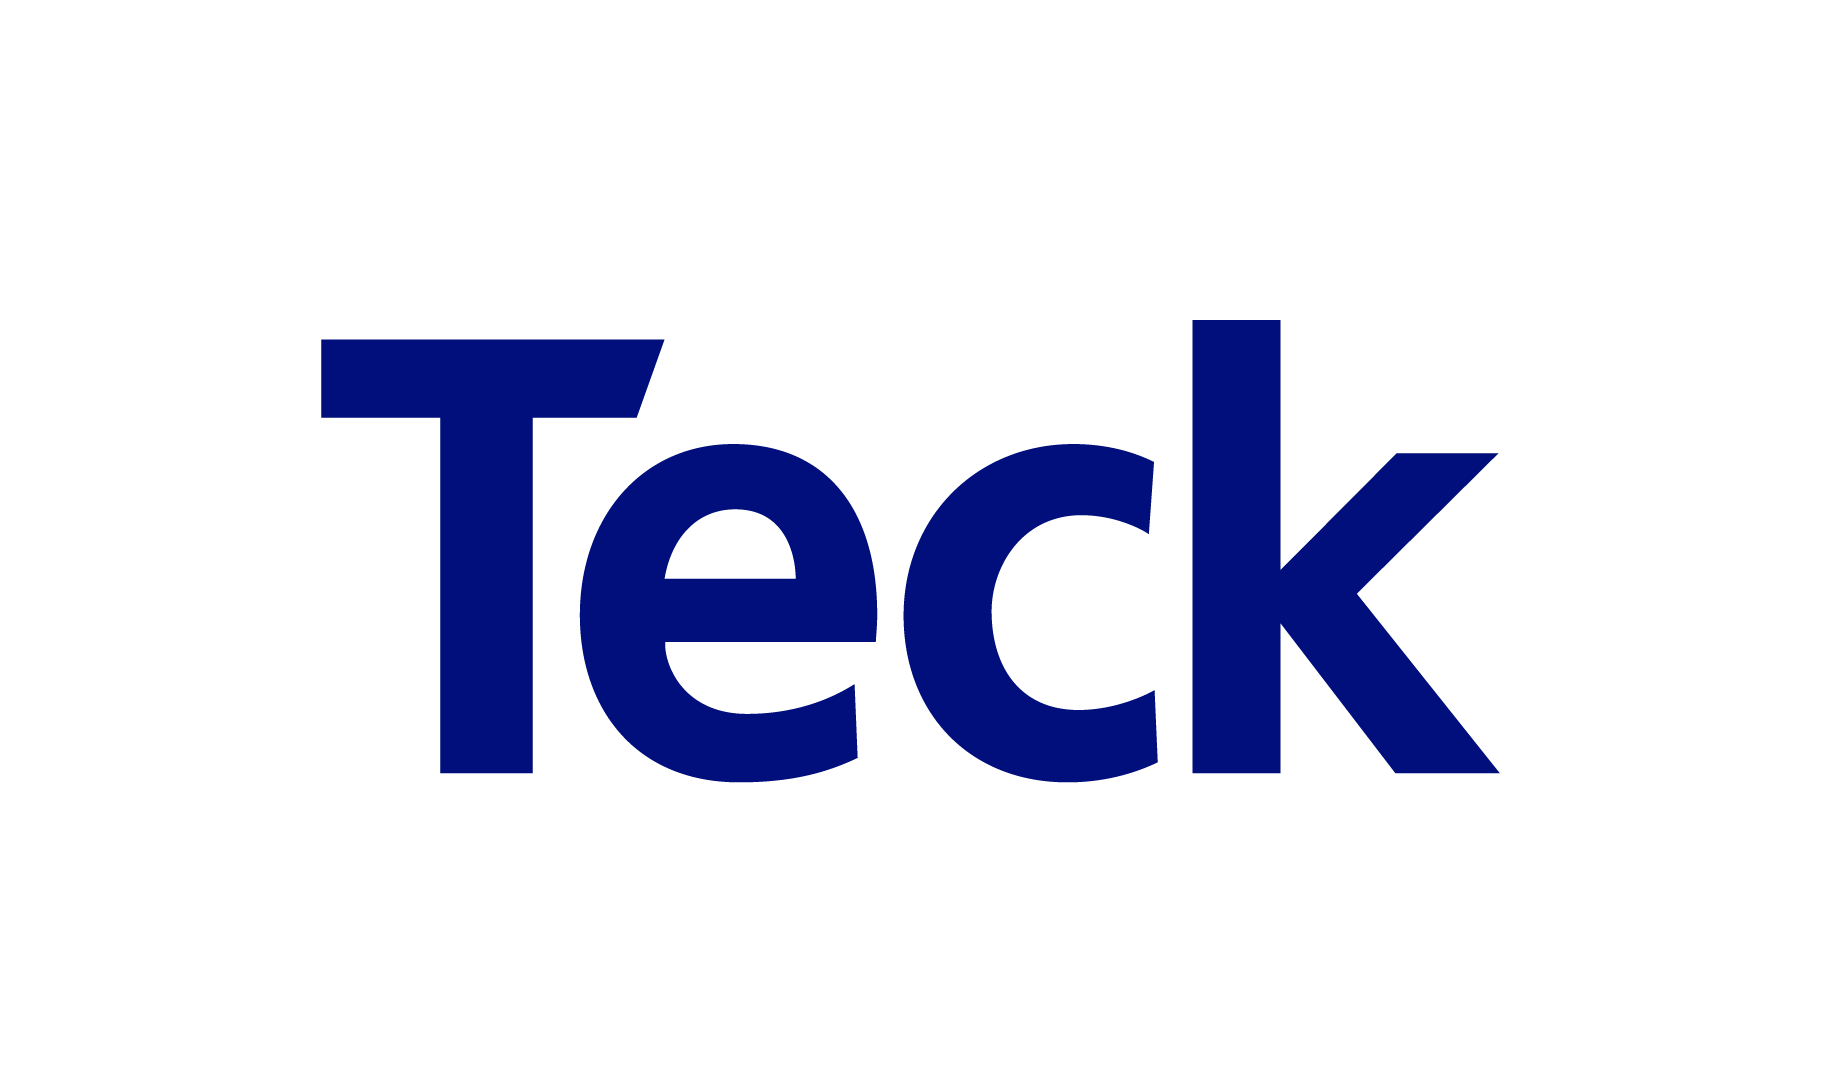 Teck Partners to Launch Copper & Health Hospital Study in Chile